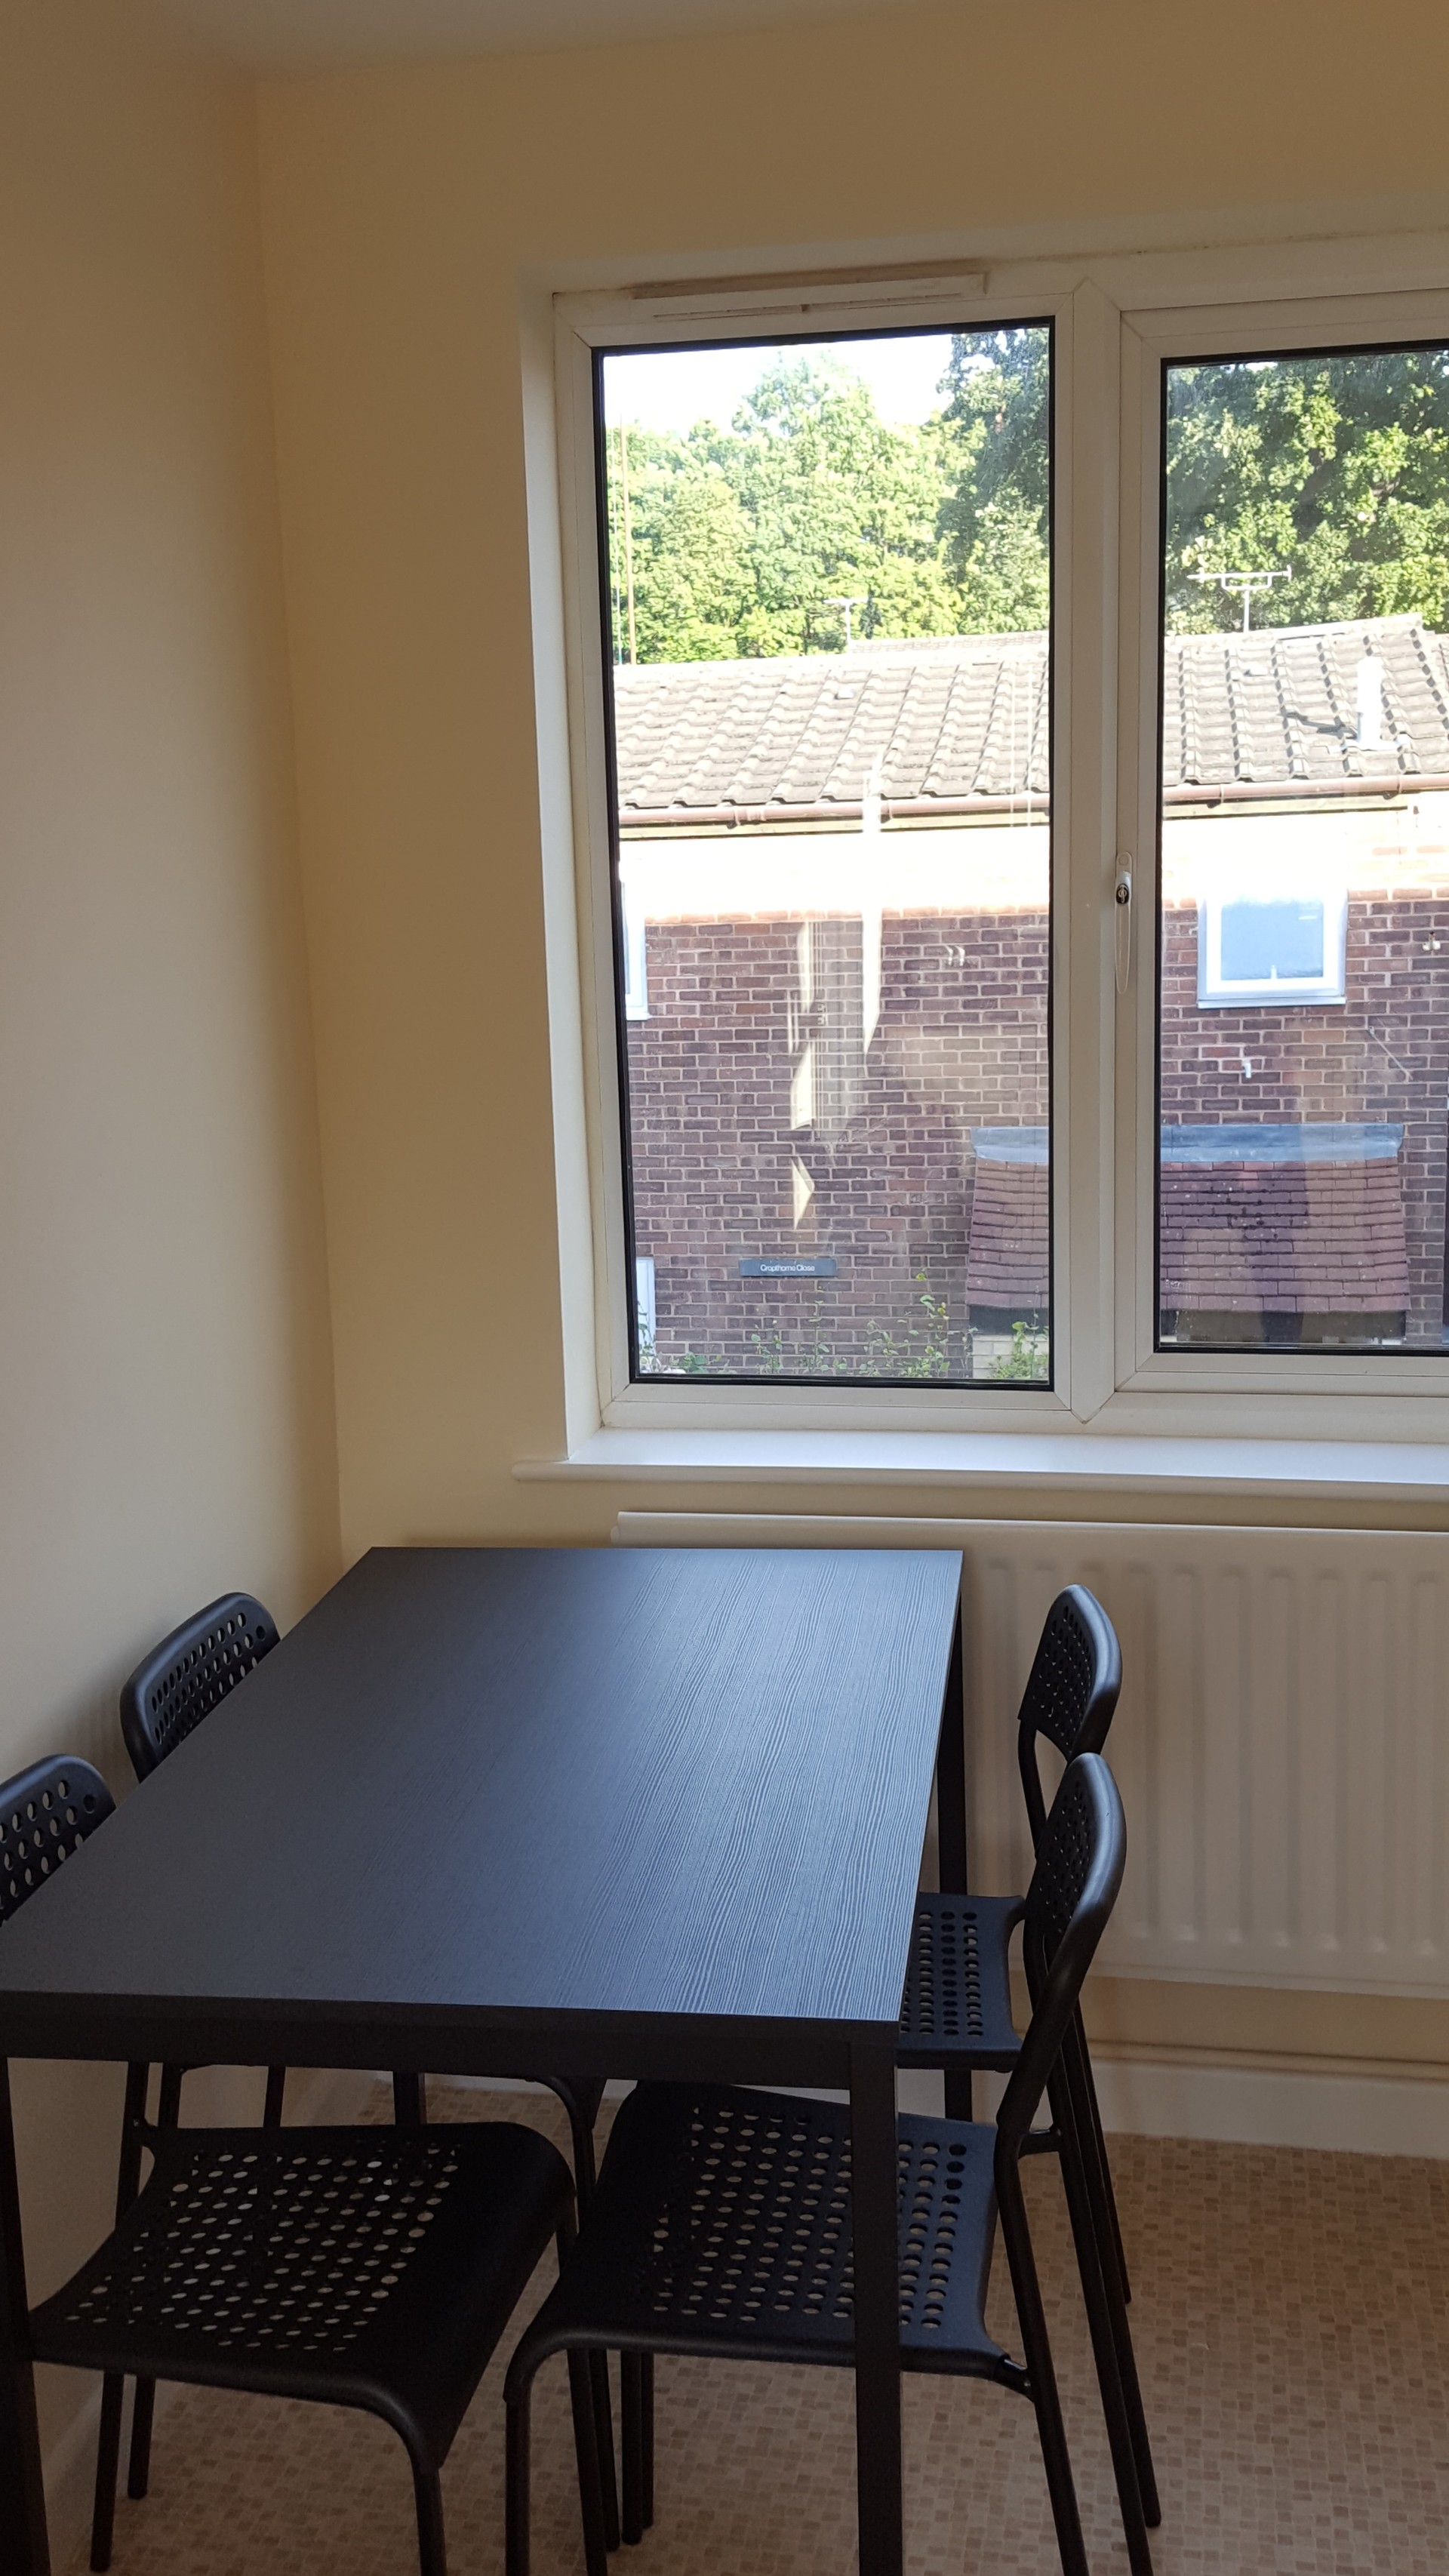 double-room-lovely-refurbished-house-share-redditch-c3c5ebae7dadf849e9c6c69e9a23a968.jpg